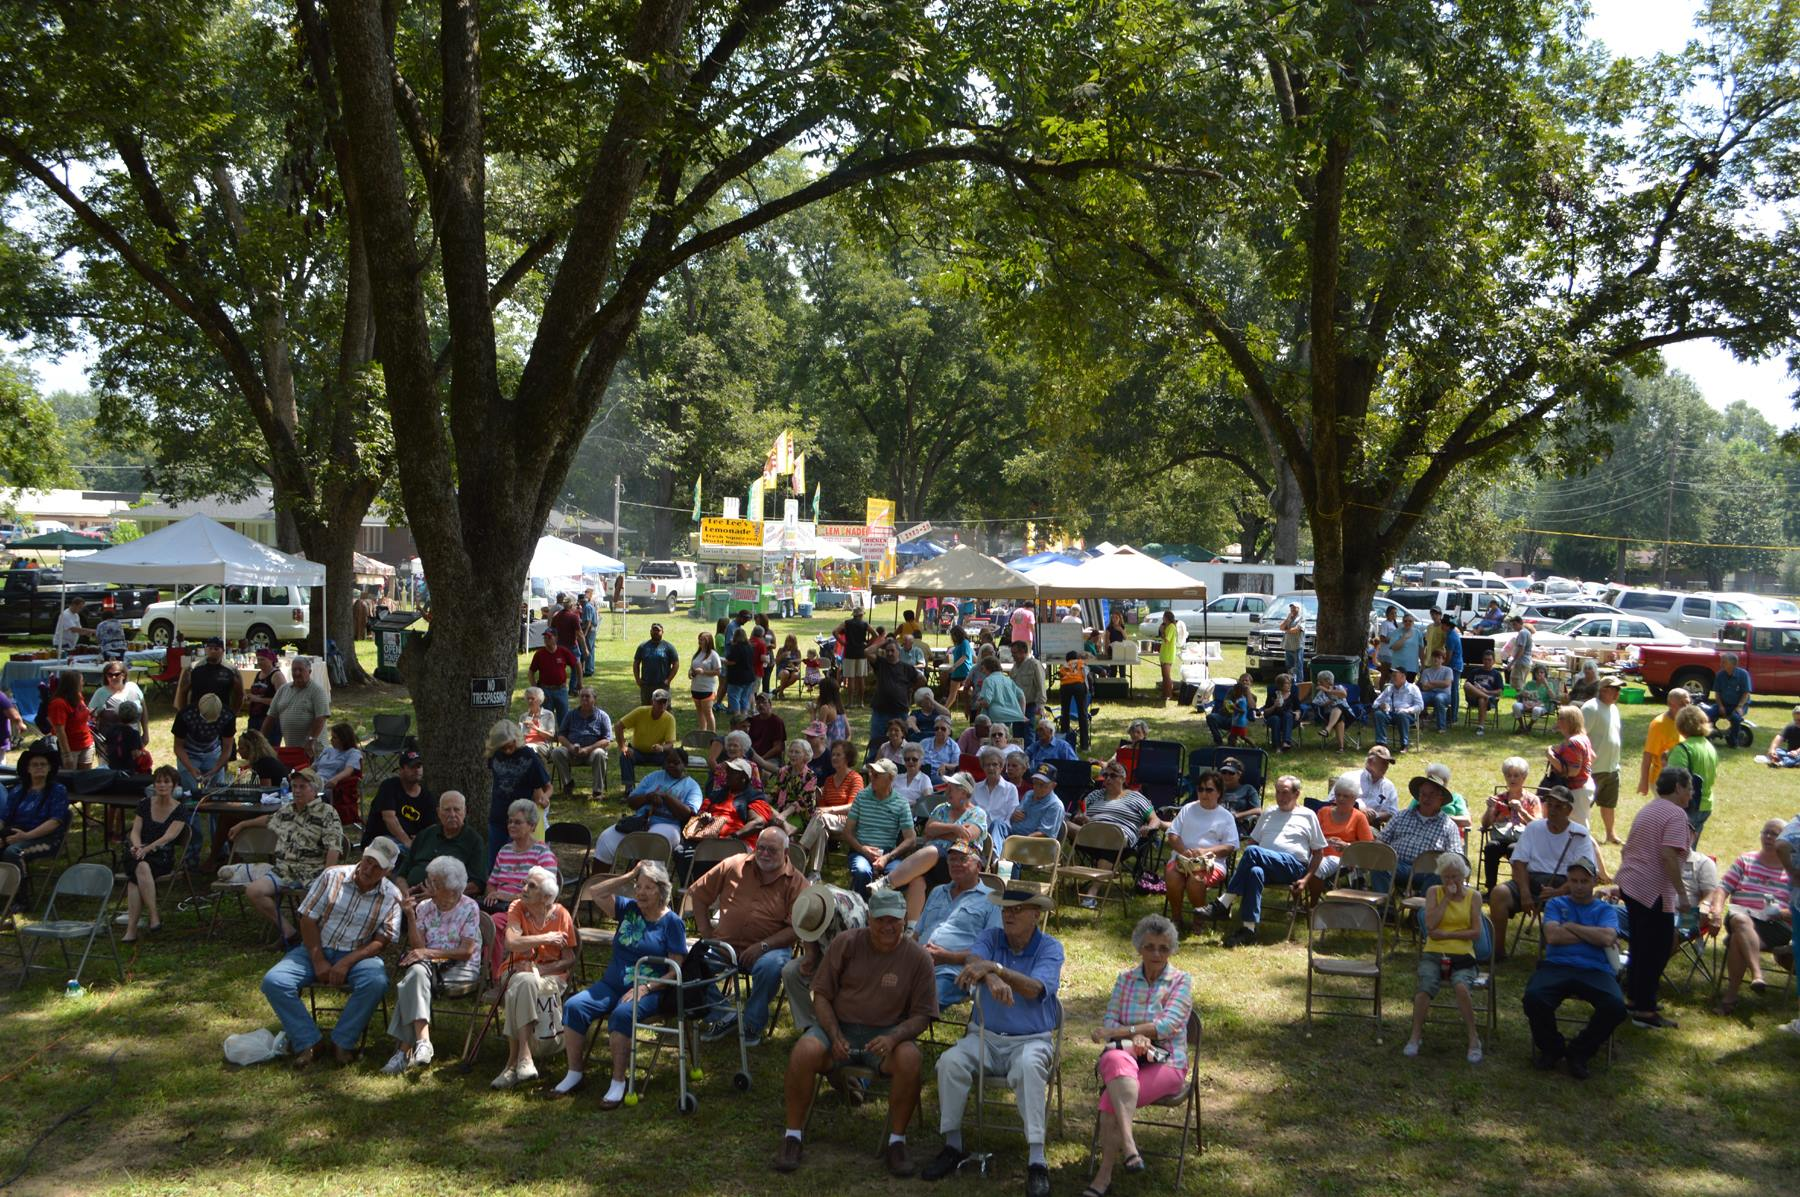 Duck Hill Ms >> The Boguecreekfestival Is A Duck Hill Family Reunion